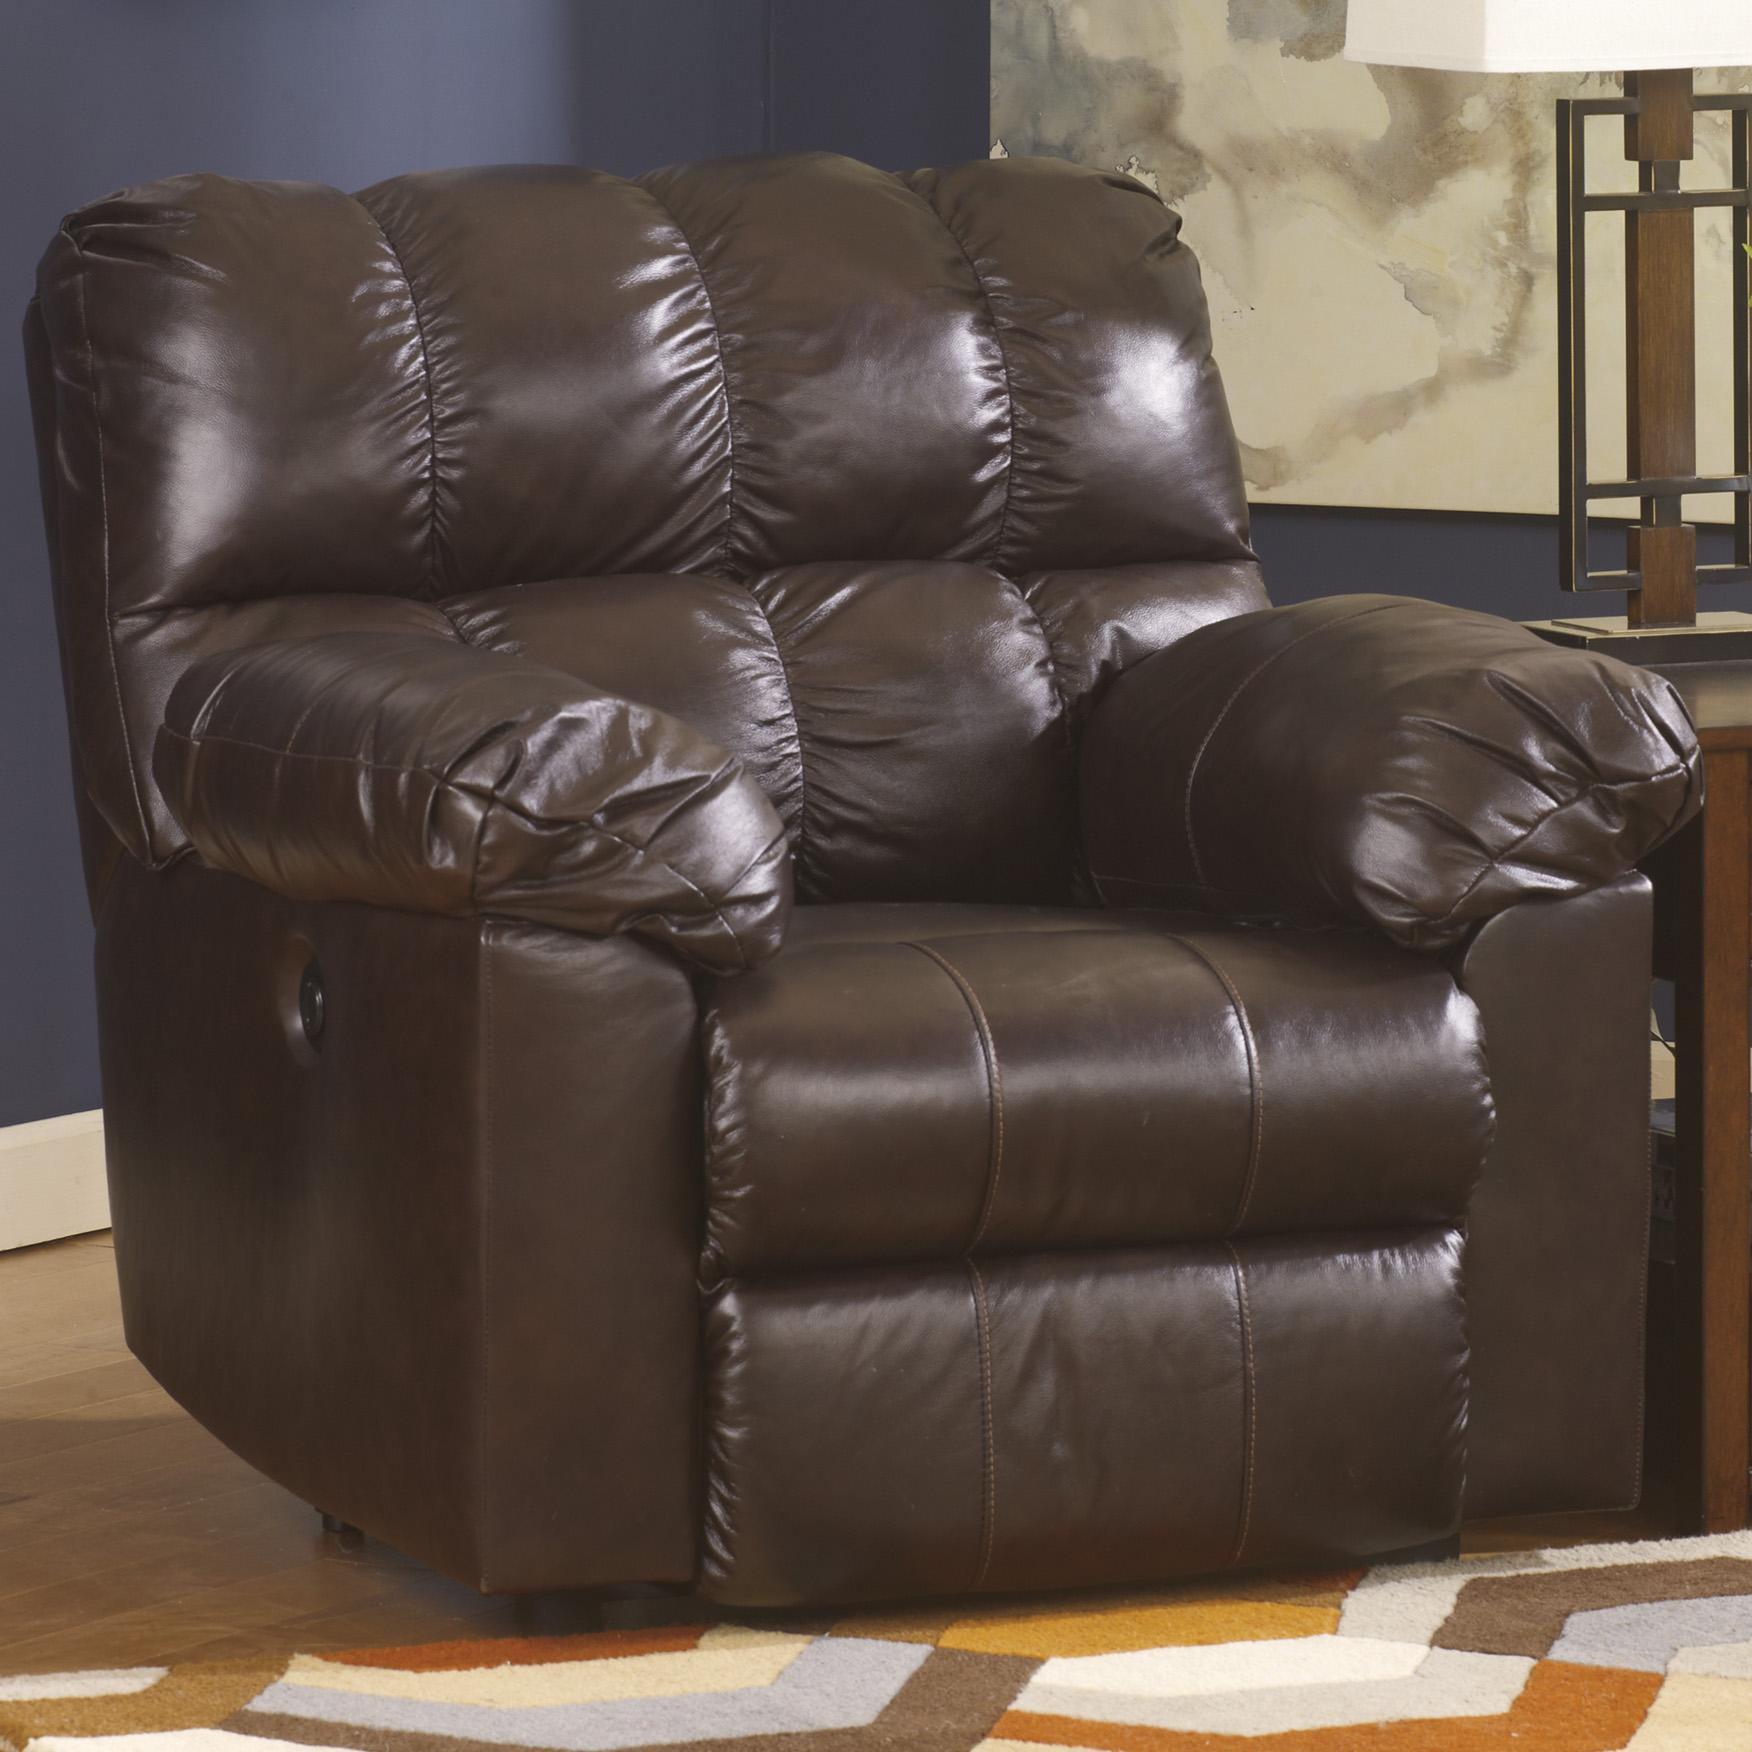 Kennard Chocolate Rocker Recliner With Large Pillow Arms By Signature Design Ashley